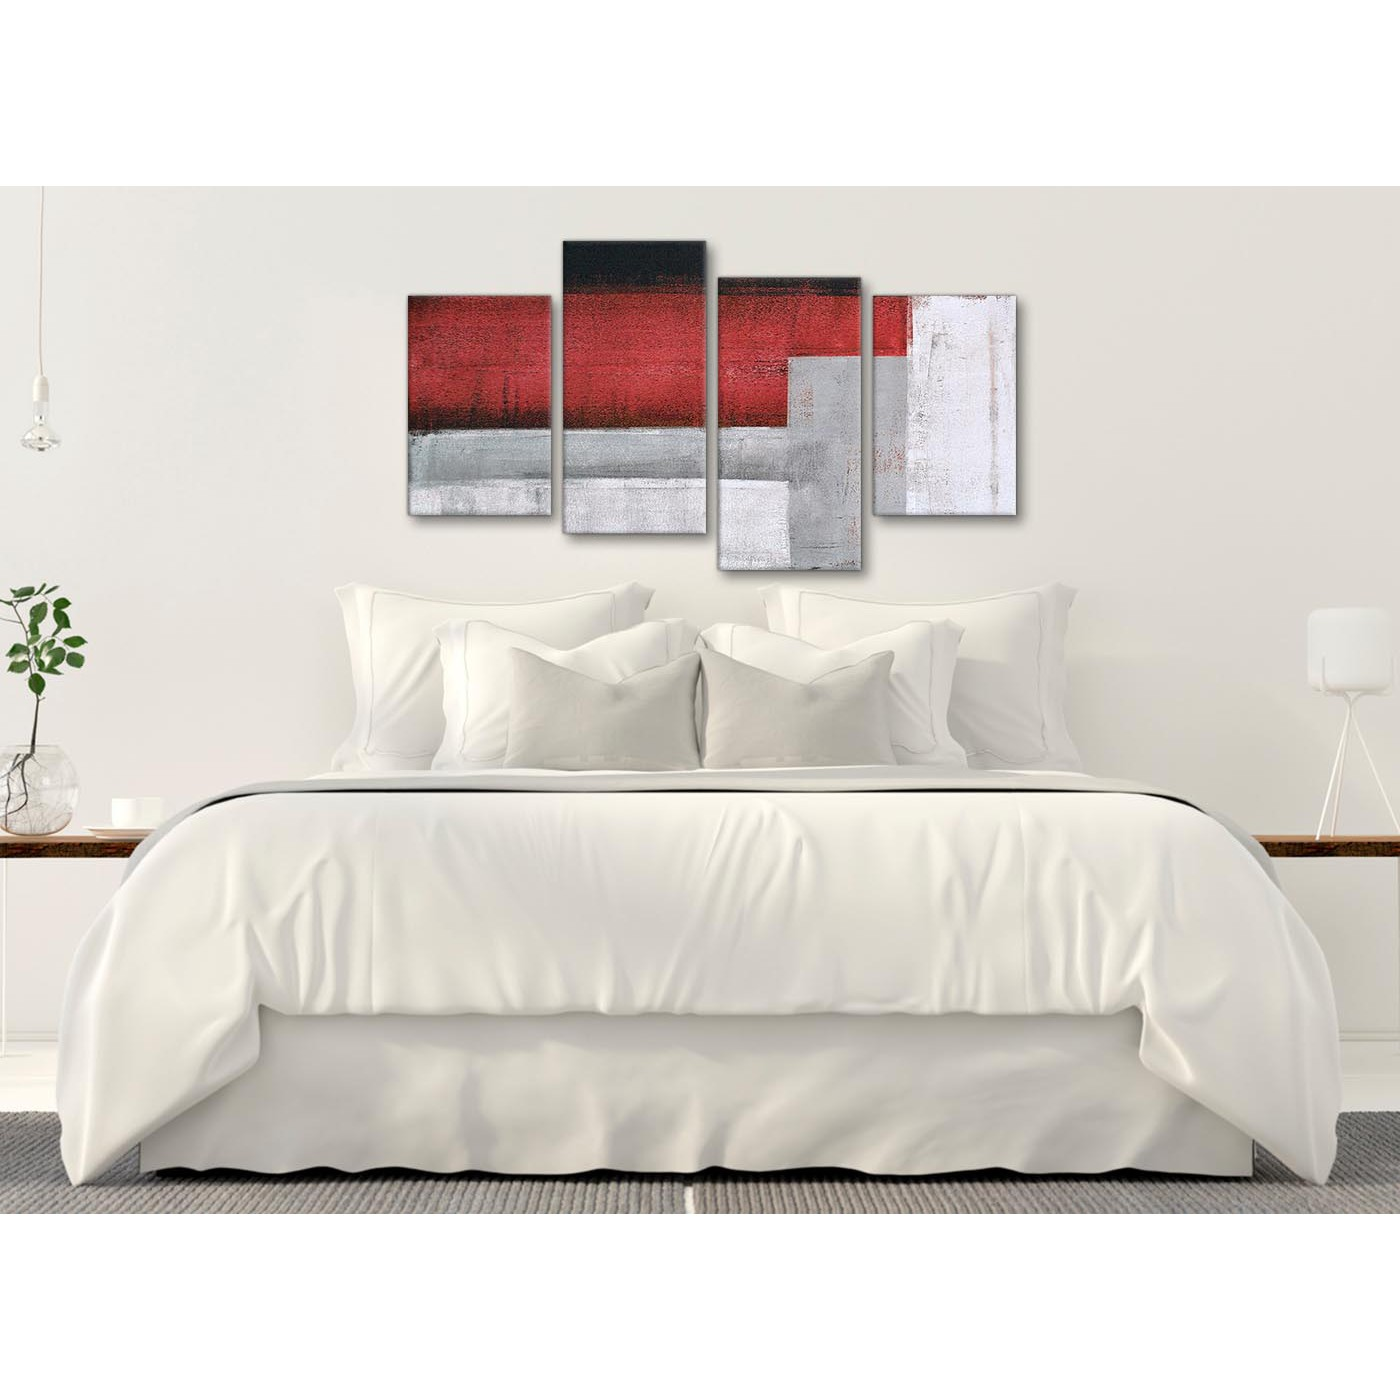 Display gallery item 1 modern large red grey painting abstract bedroom canvas pictures decor 4428 130cm set of display gallery item 2